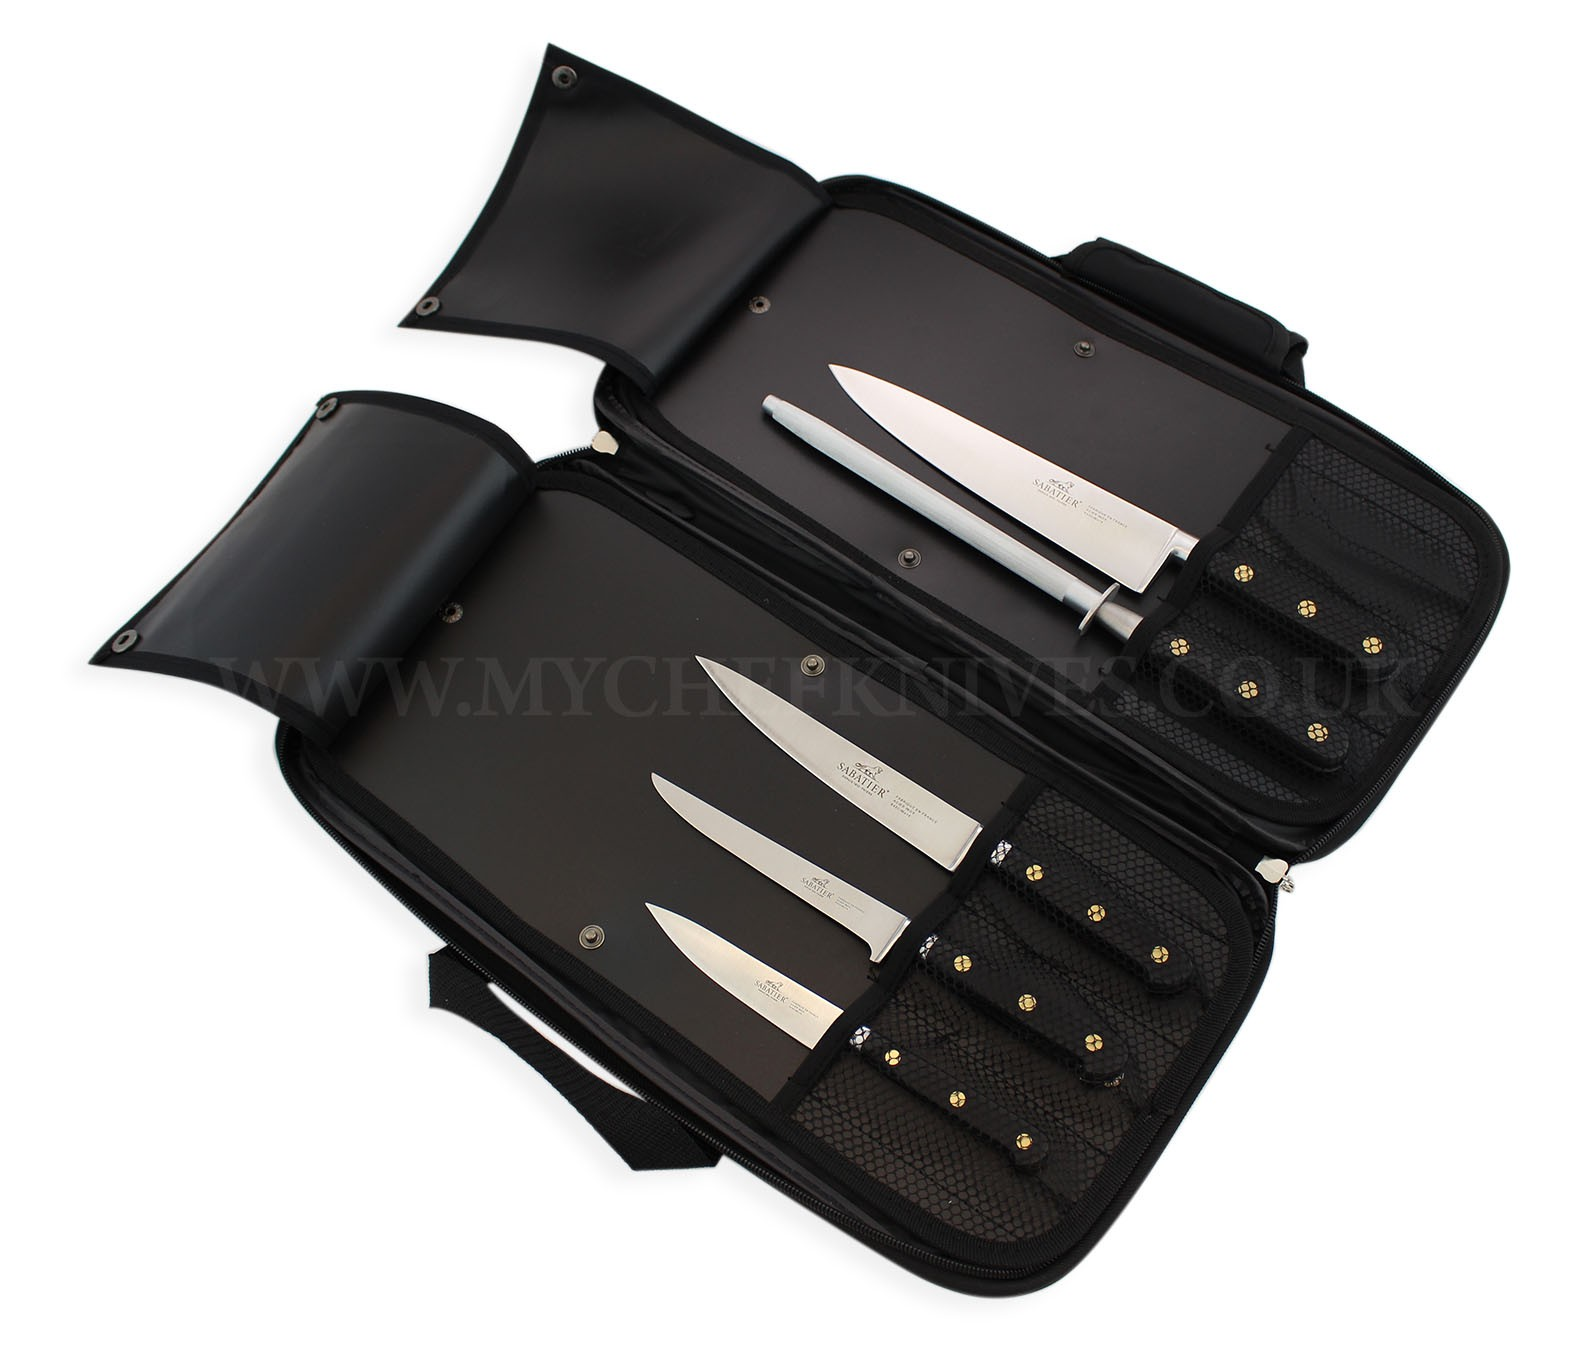 sabatier kitchen knife bag 4 knives 1 honing steel. Black Bedroom Furniture Sets. Home Design Ideas